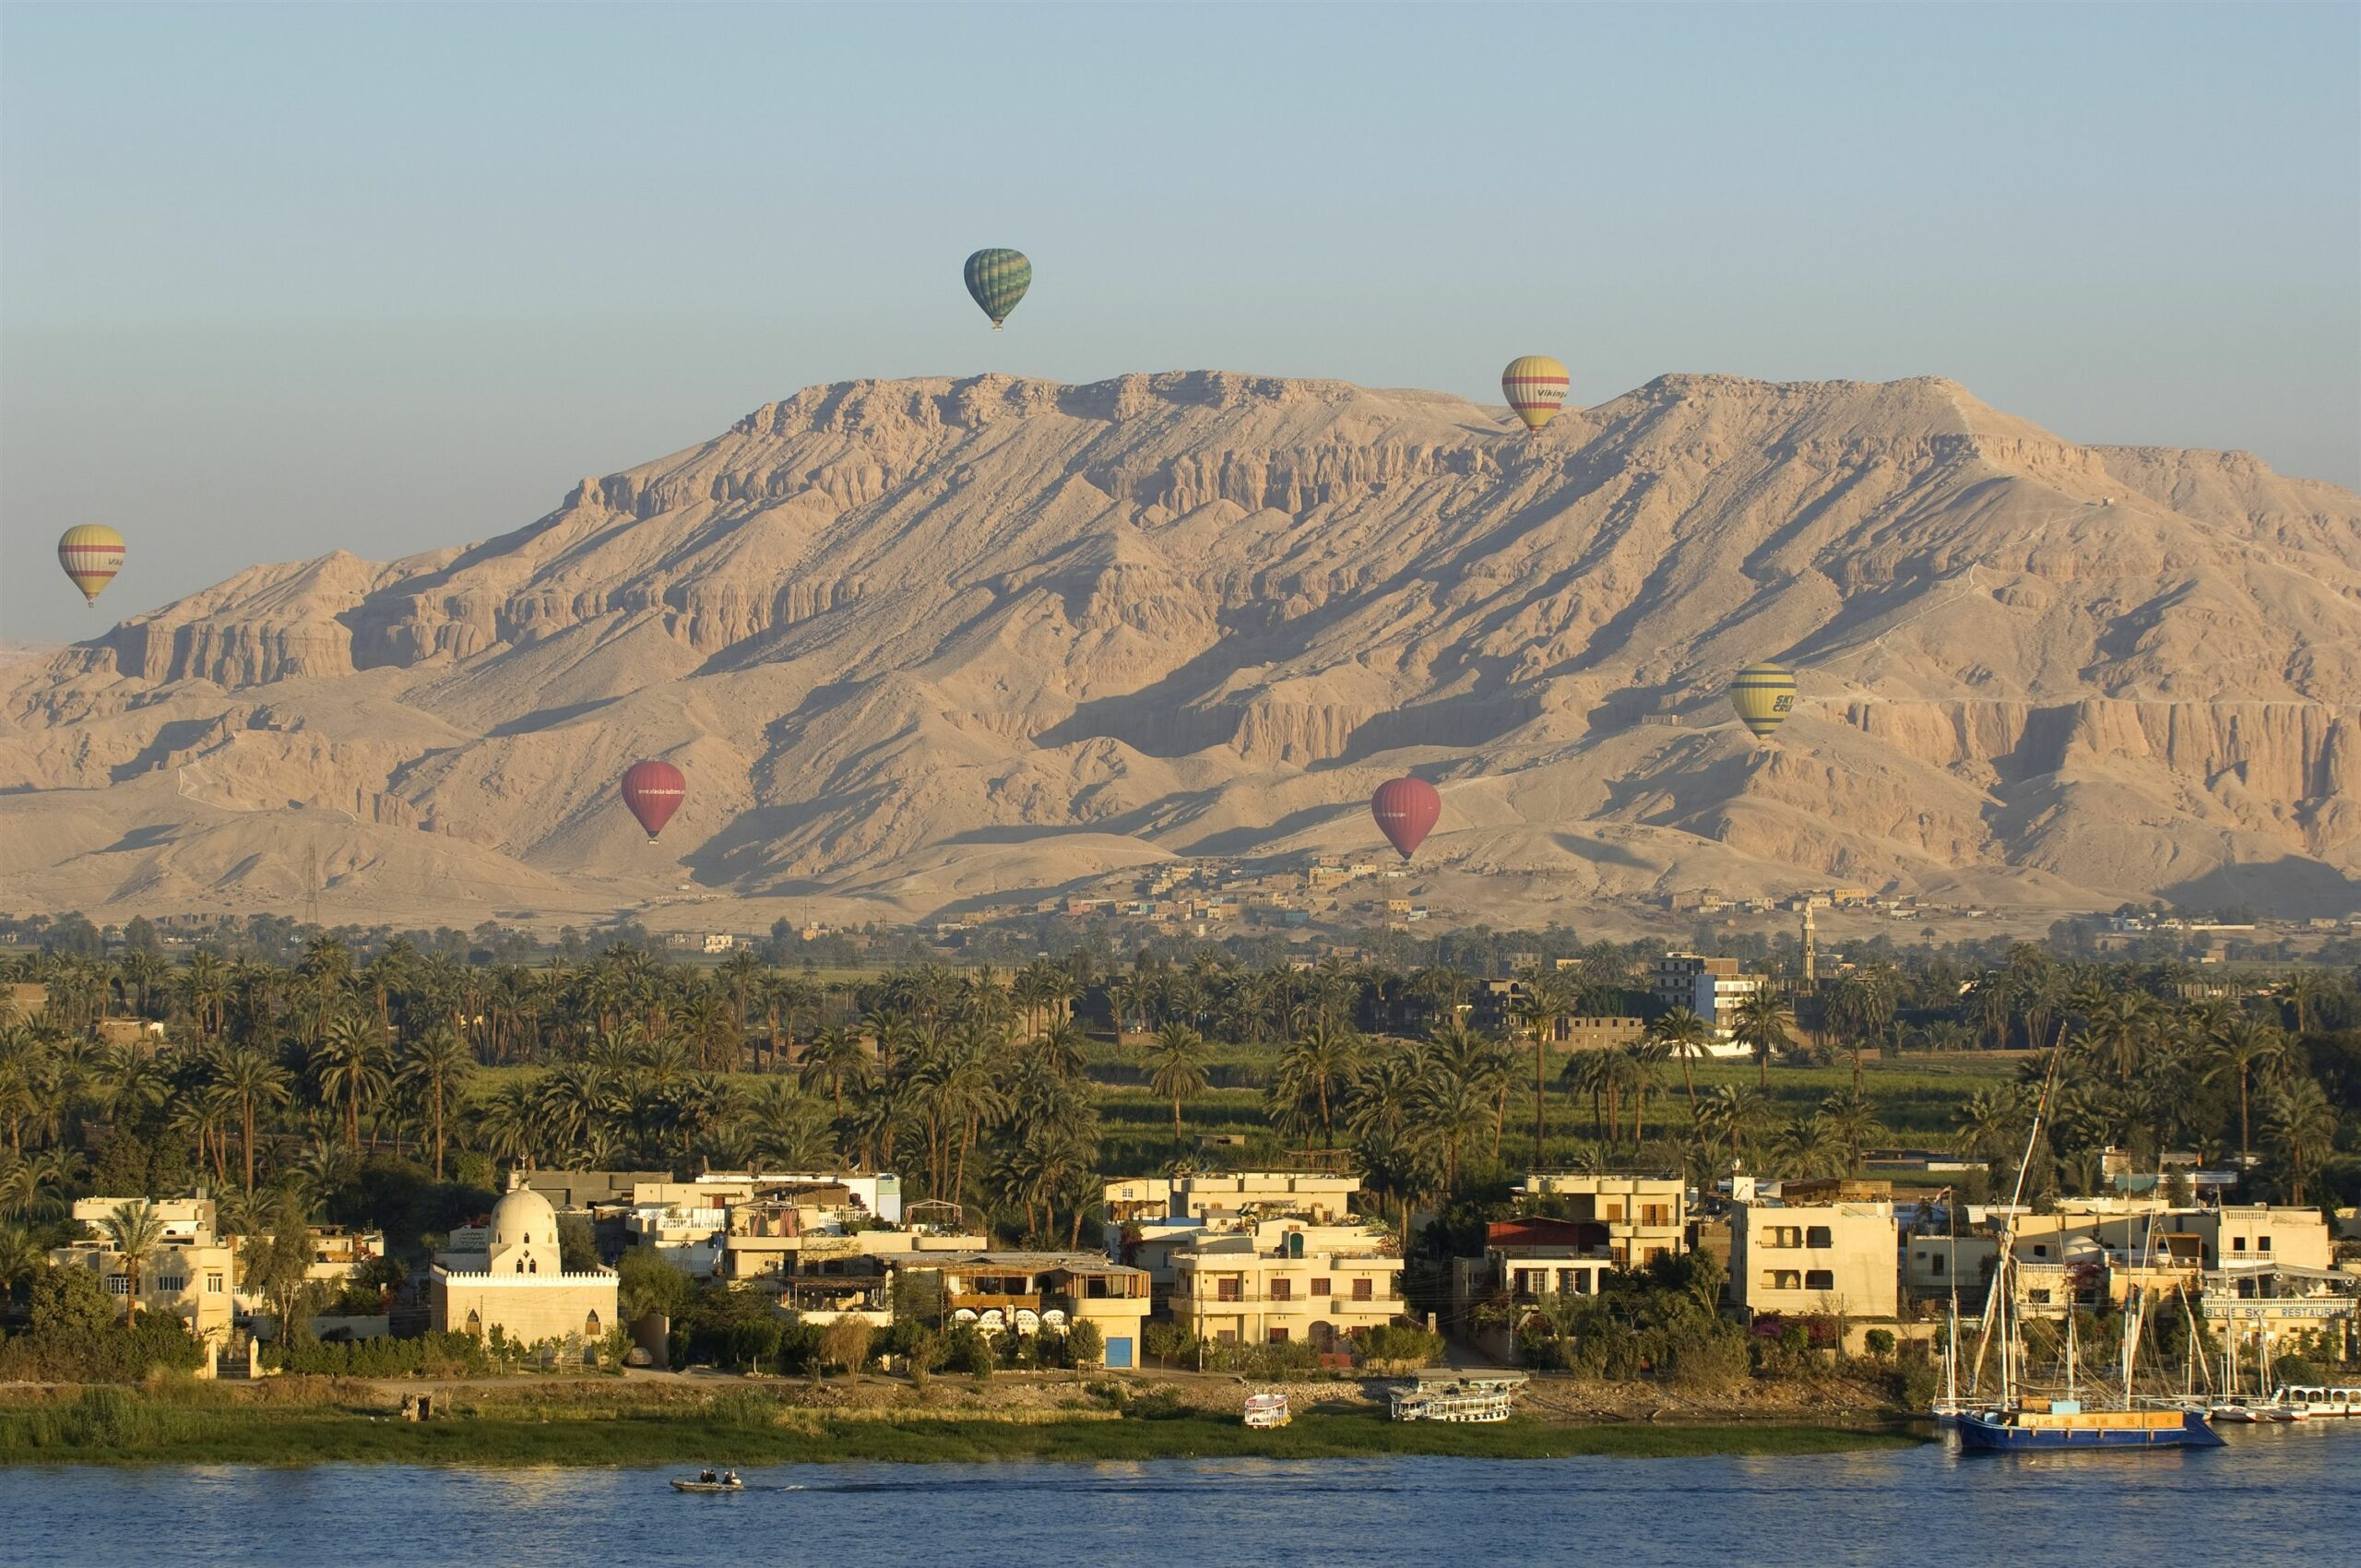 Luxor Nile Valley with hot air balloons in the sky on our best Egypt safari